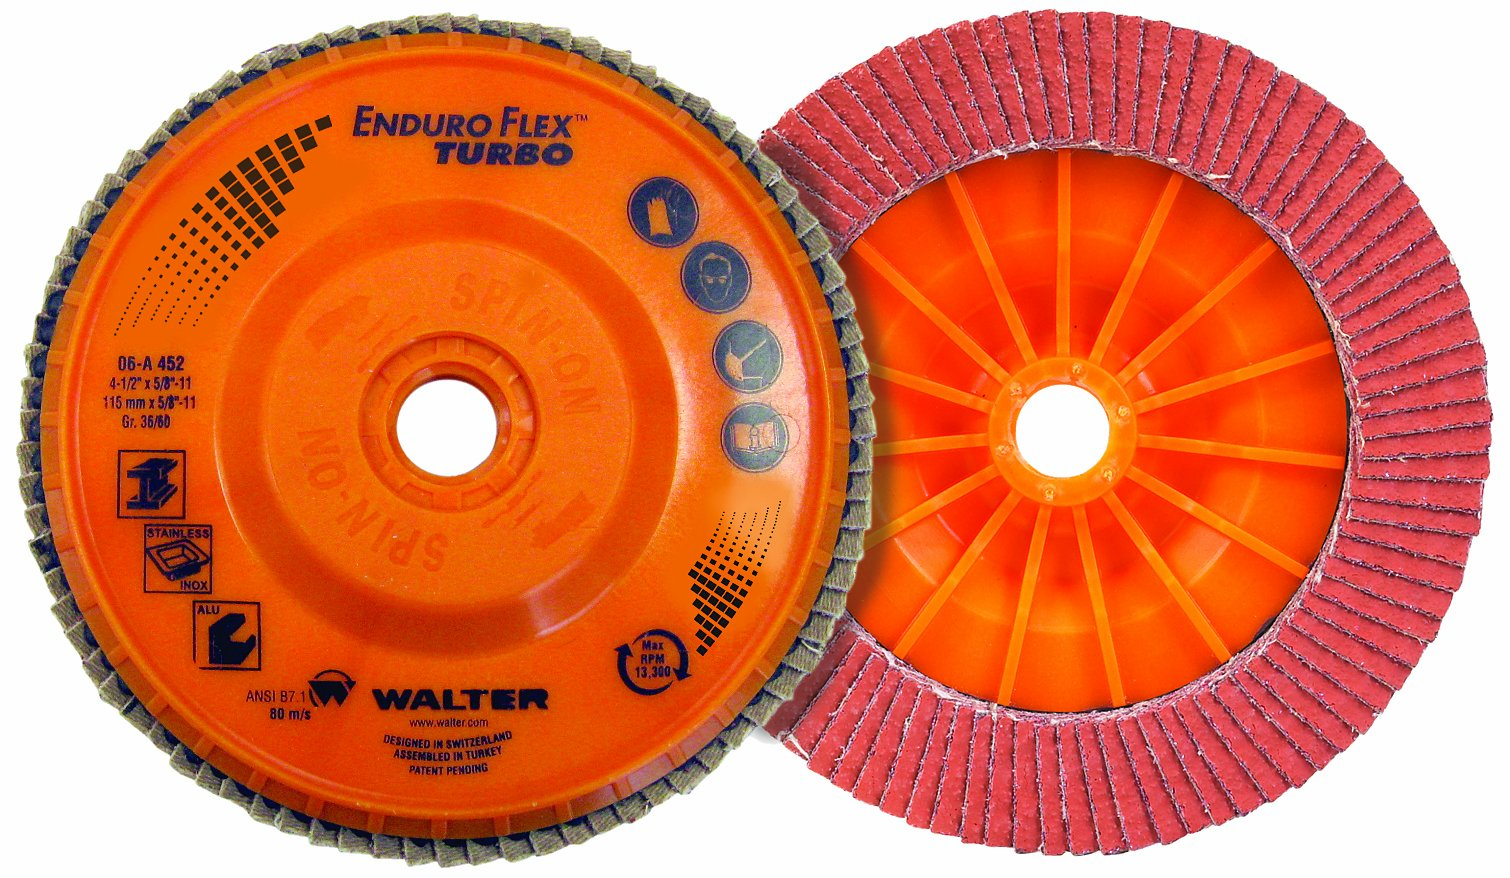 Walter Enduro-Flex Turbo Abrasive Flap Disc, Type 29, 5/8''-11 Thread Size, Plastic Backing, Ceramic, 6'' Diameter, Grit 36/60 (Pack of 10) by Walter Surface Technologies